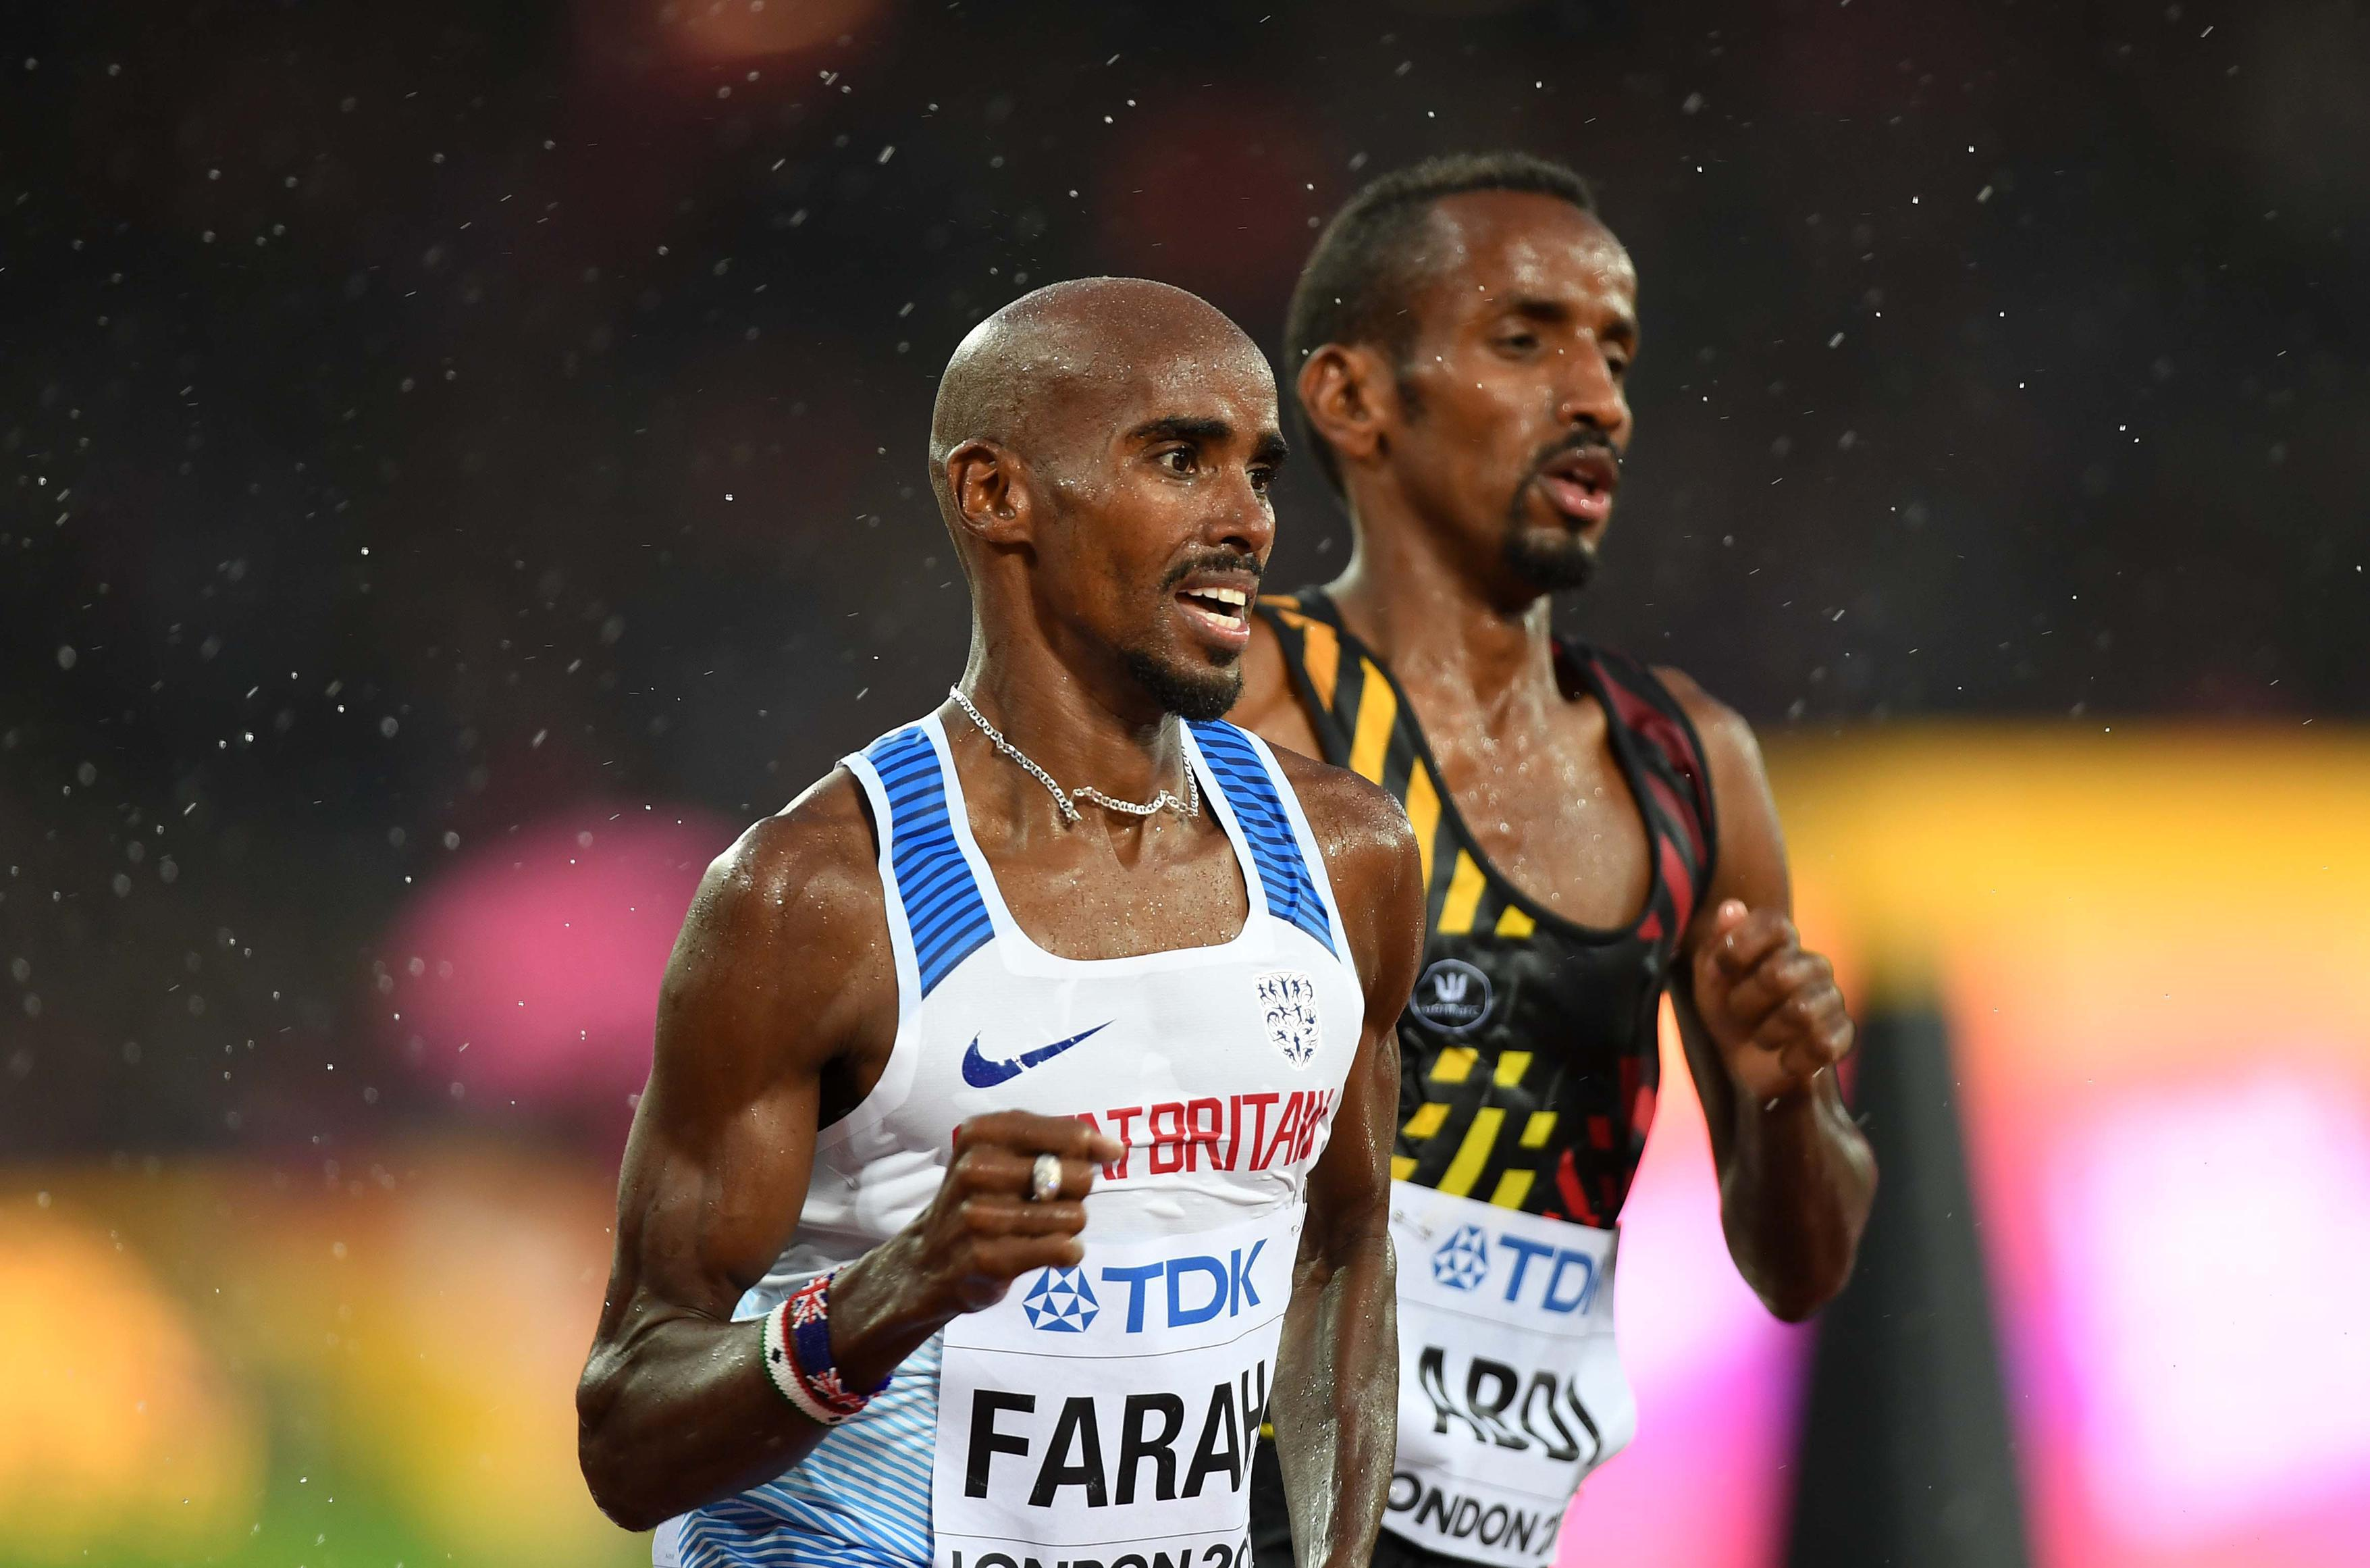 Farah will retire from the track this summer to step up to marathon distance